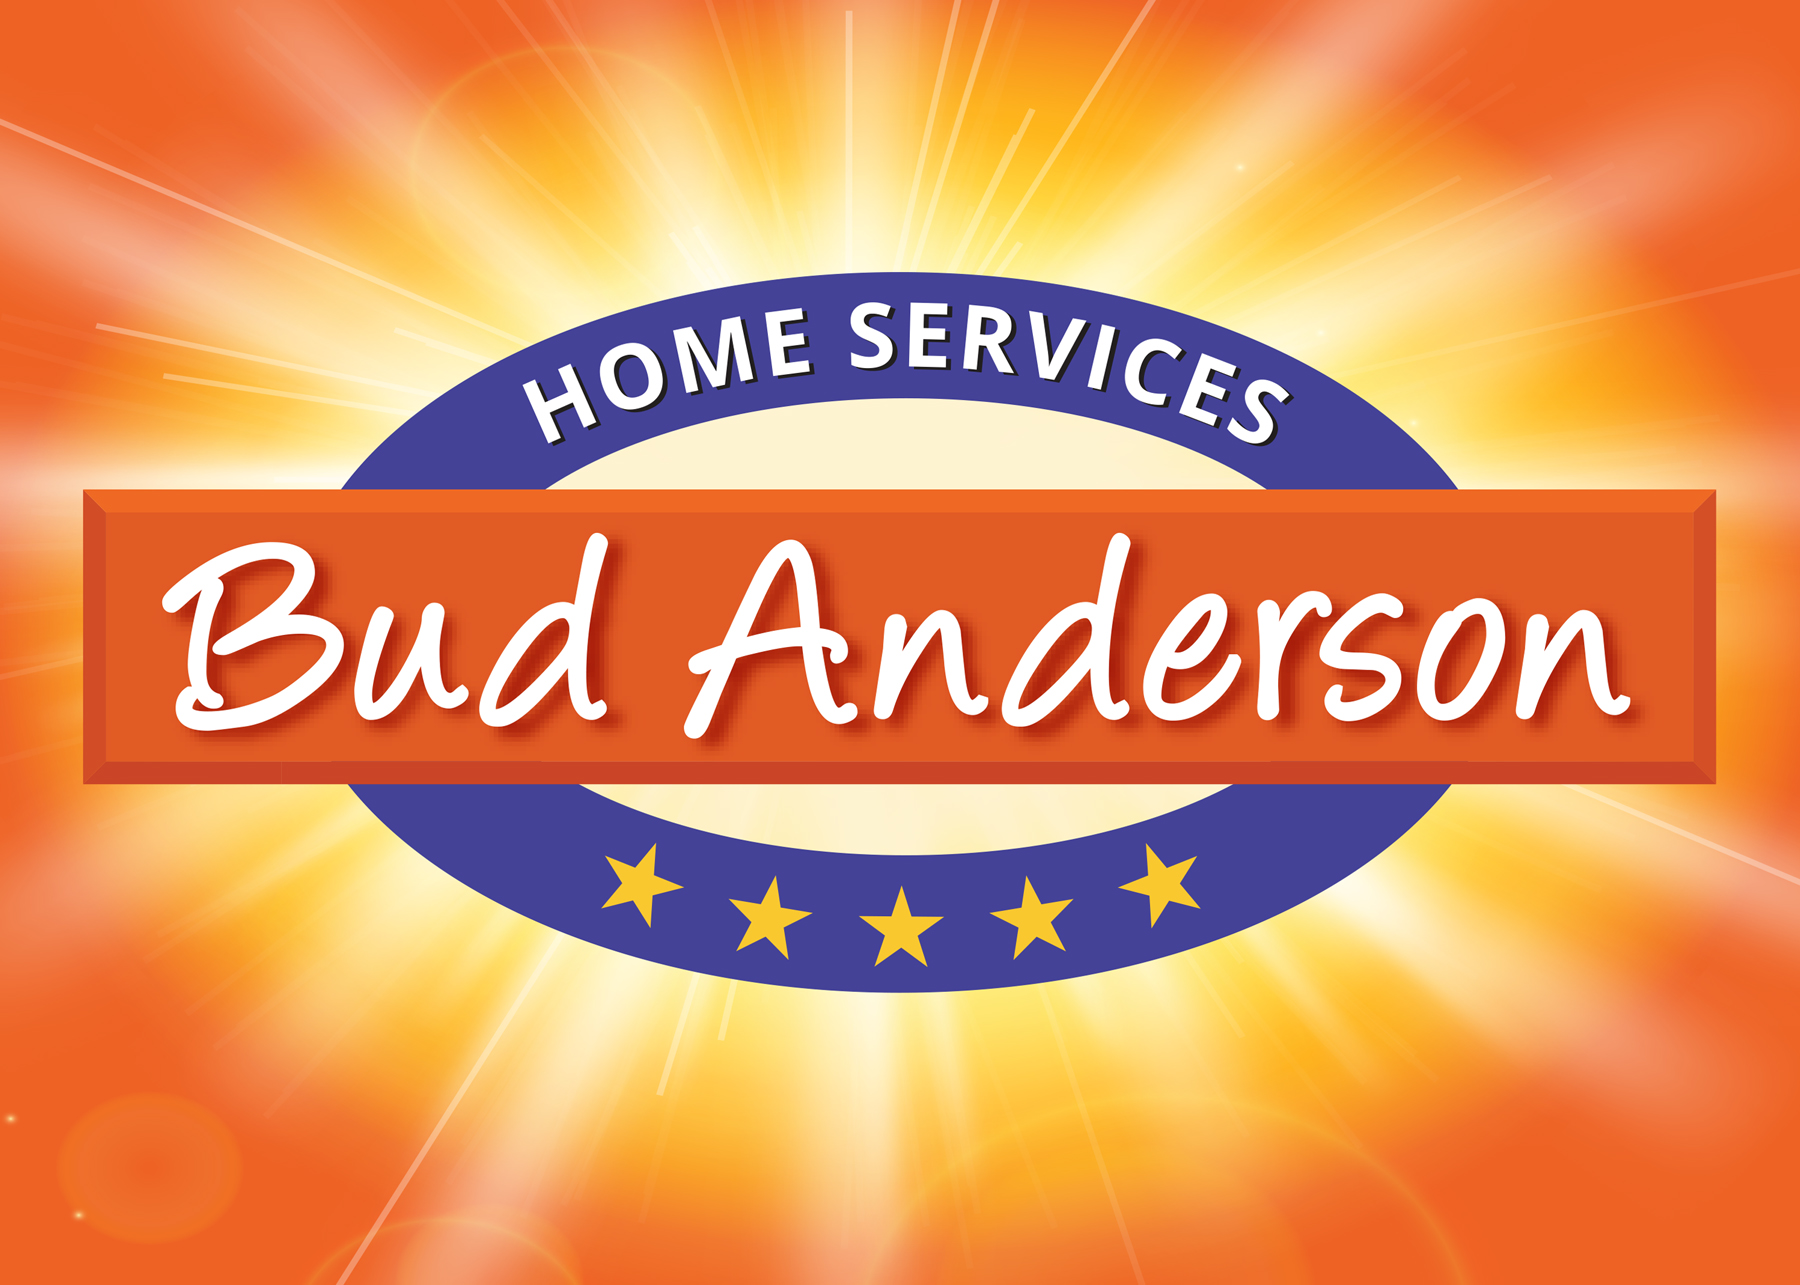 Bud Anderson Heating Coolingreviews Lowell Ar 72745 1